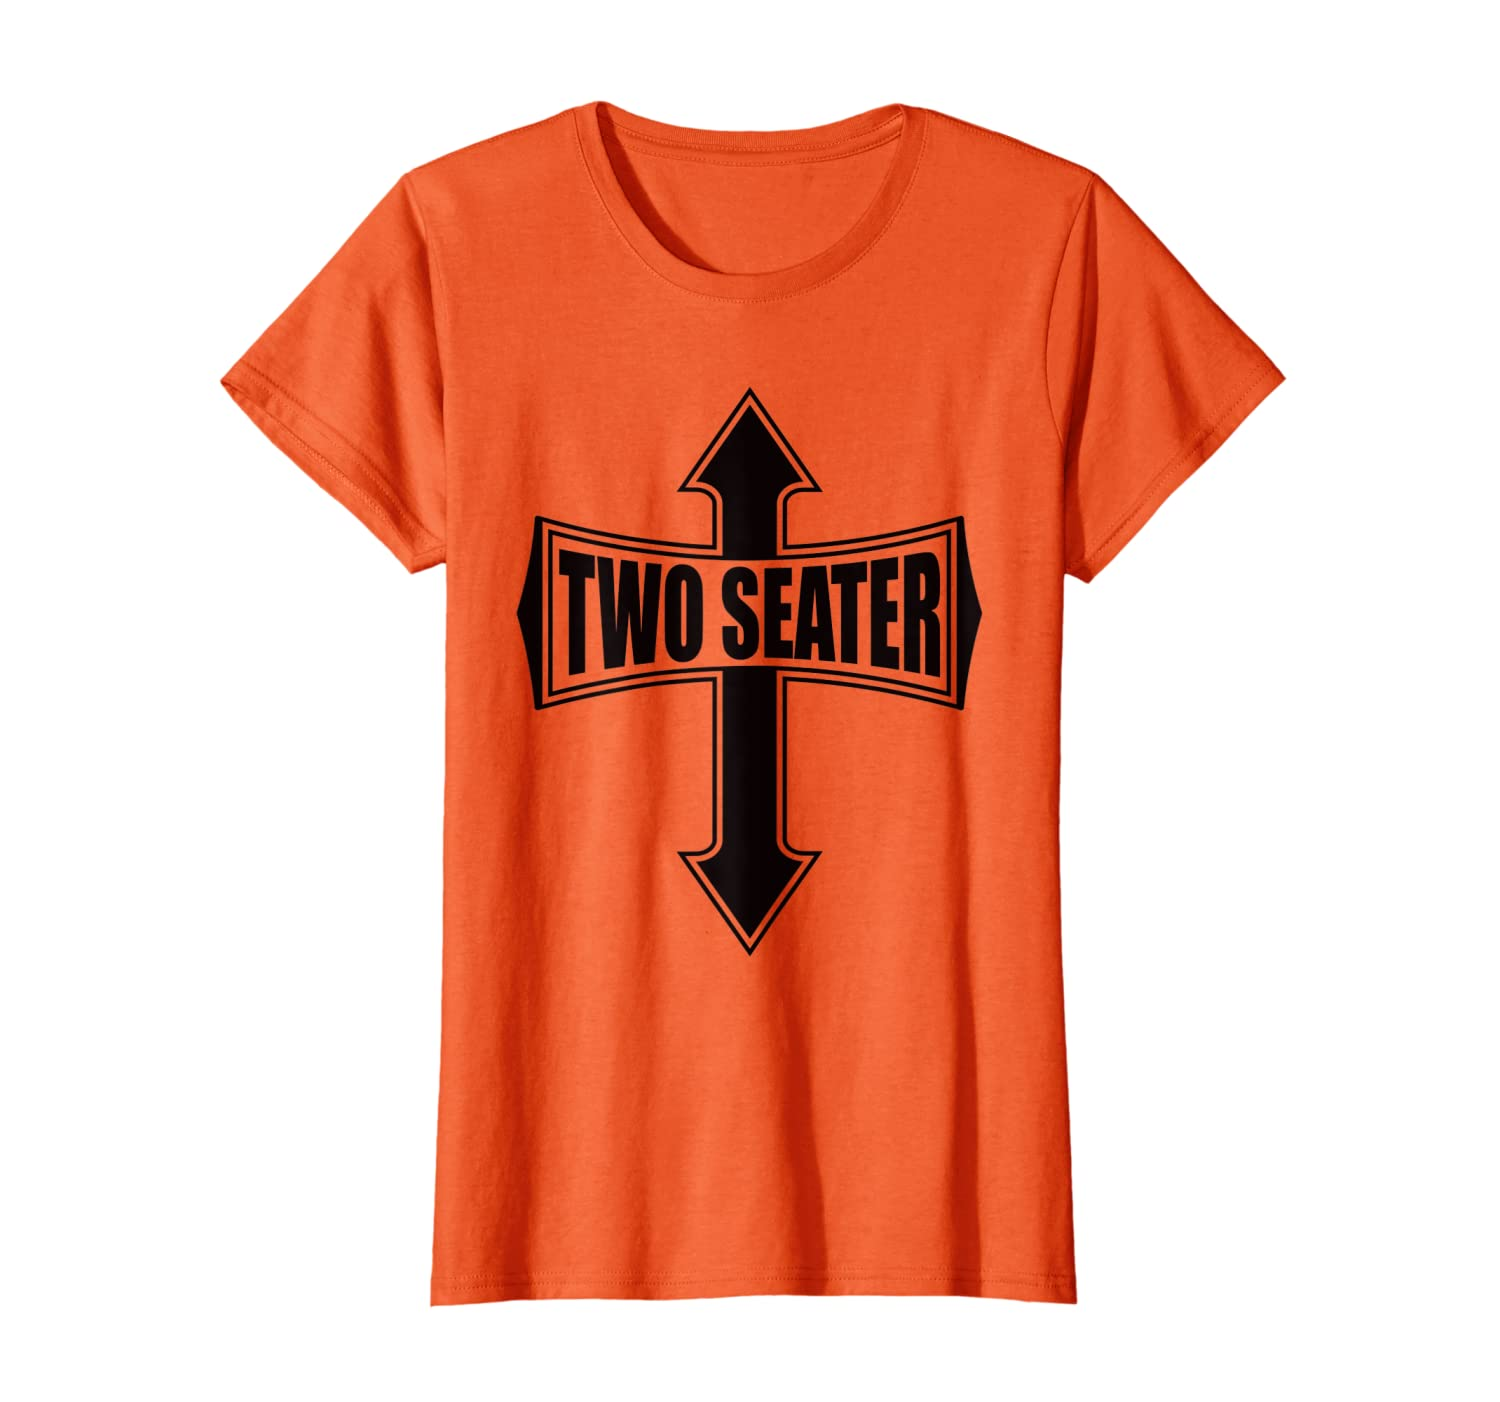 TWO SEATER T-SHIRT FUNNY PARTY GAG GIFT TSHIRT-Loveshirt